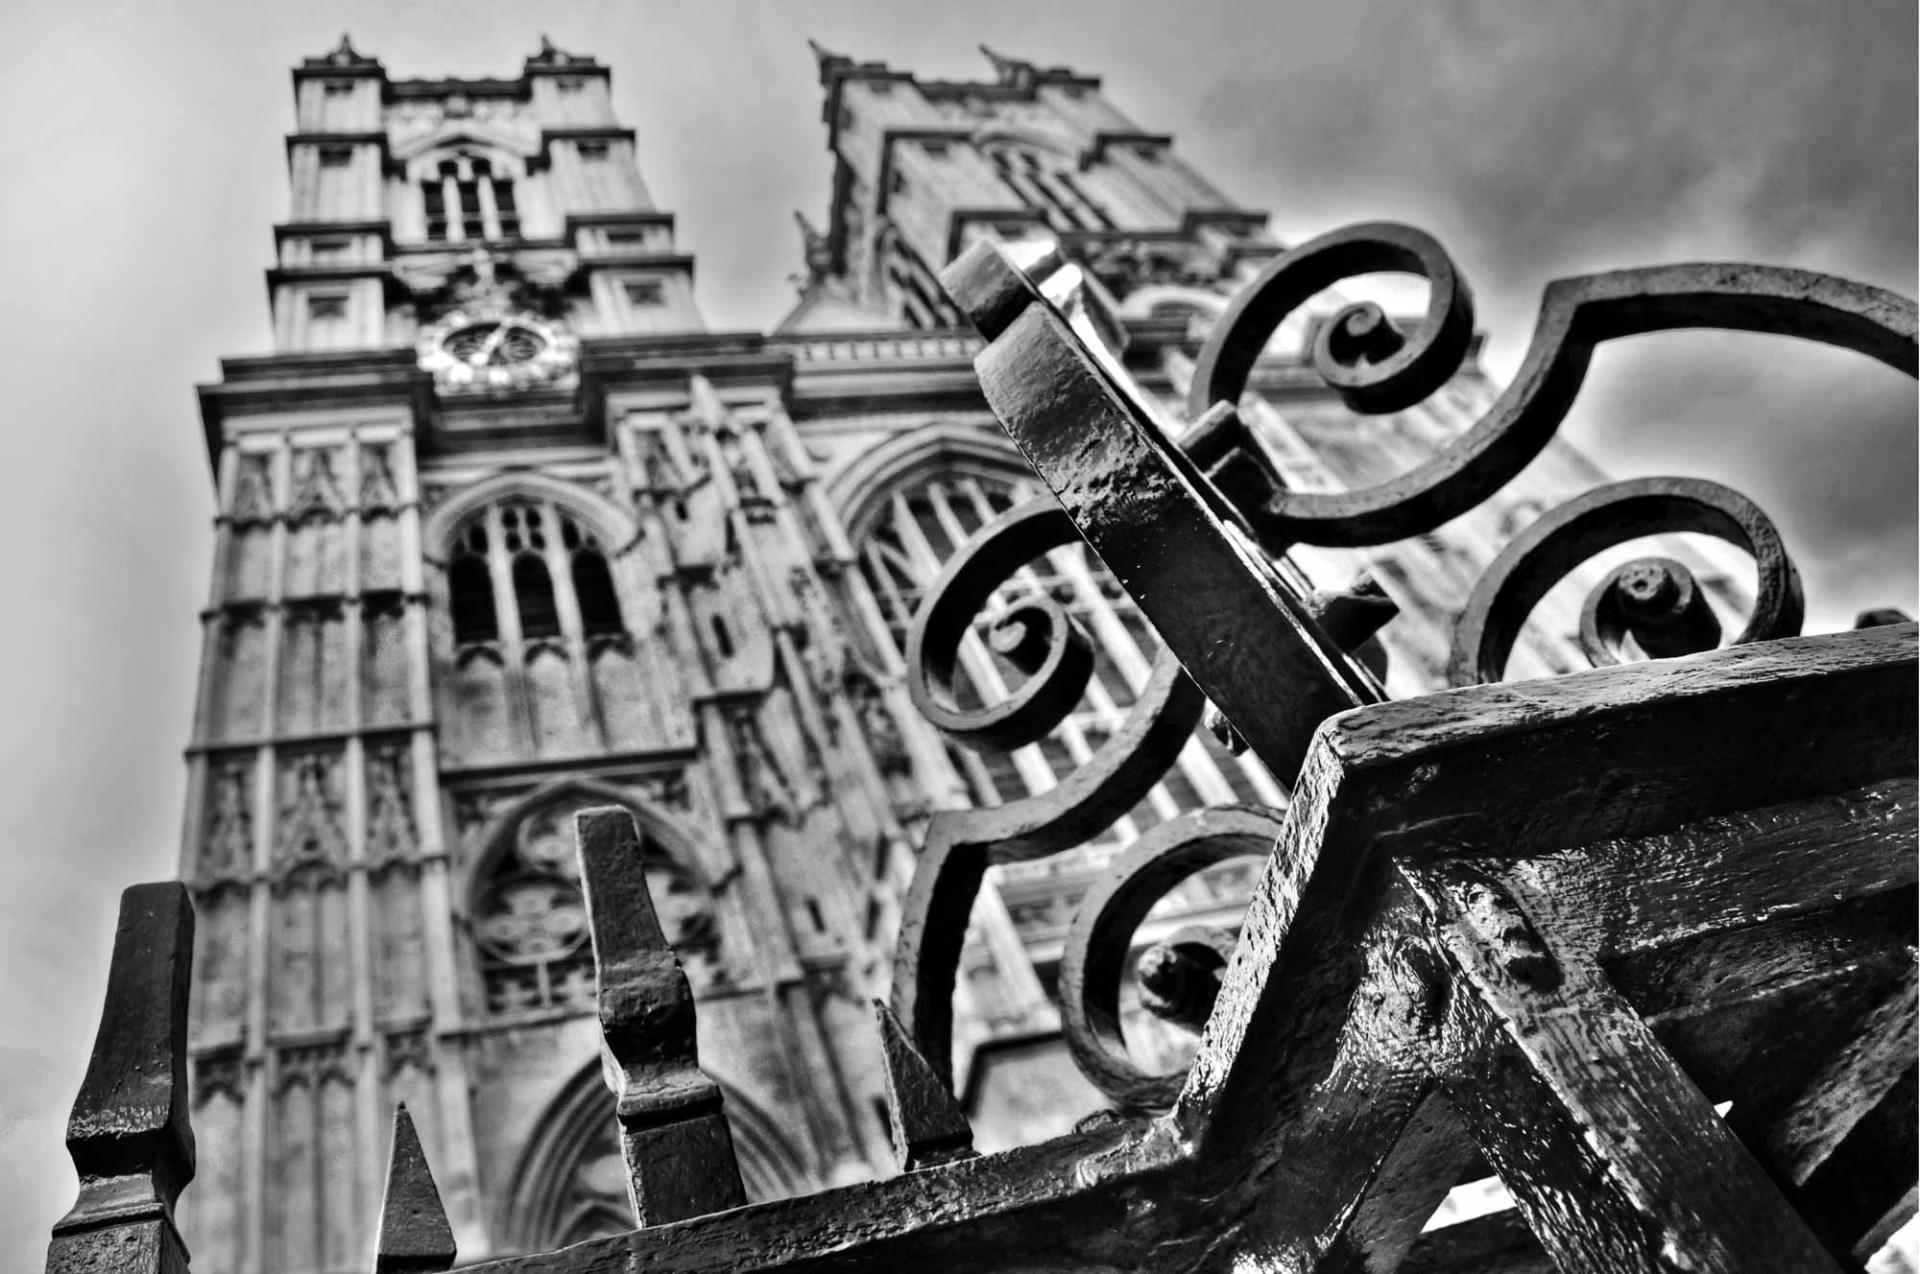 Westminster abbey in London (uk)